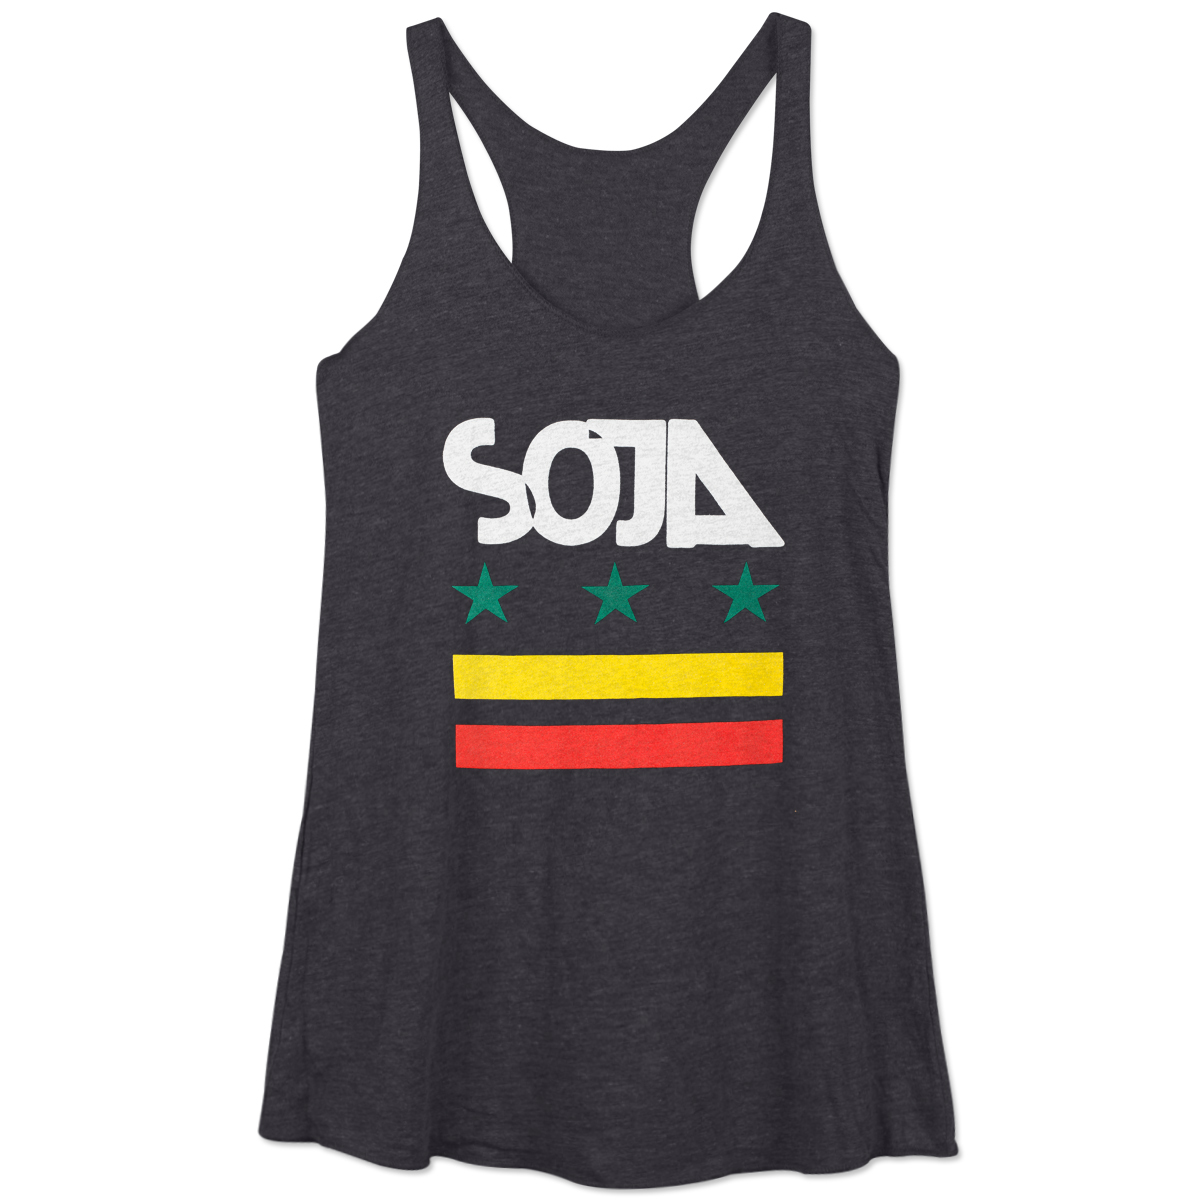 SOJA - Black Stars & Bars Women's Tank